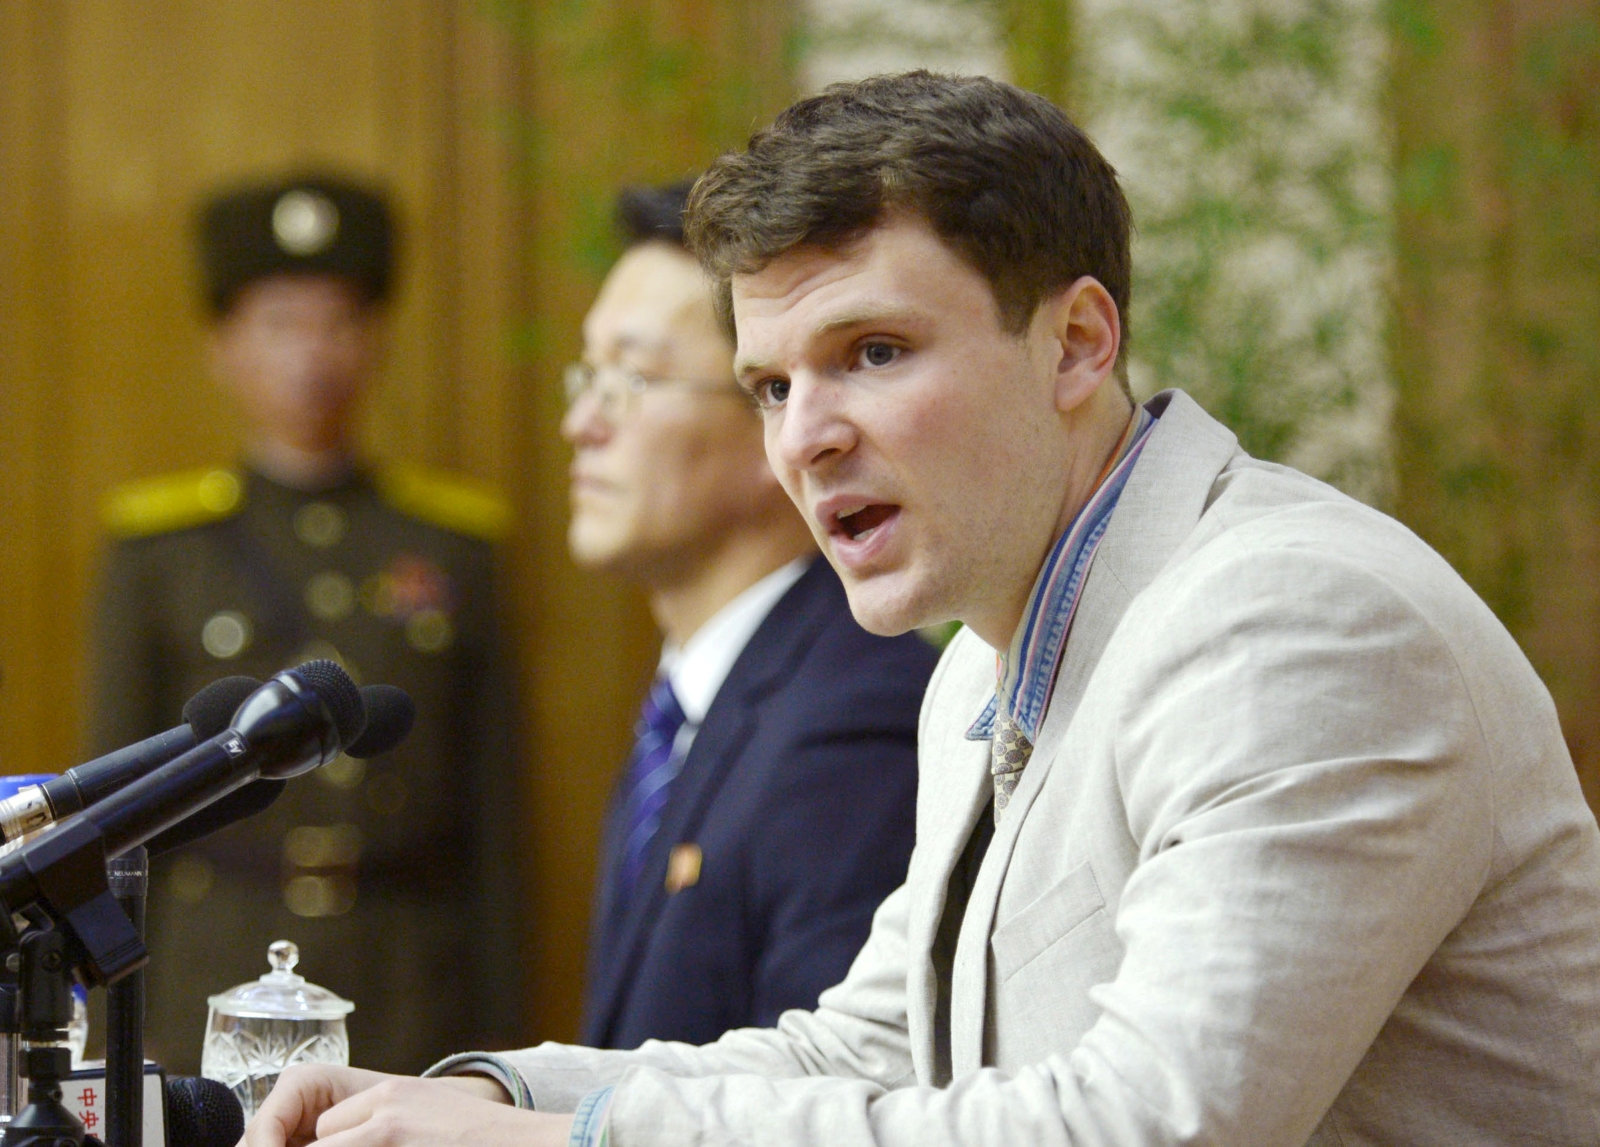 Otto Warmbier dies: Trump denounces North Korea as a 'brutal regime'